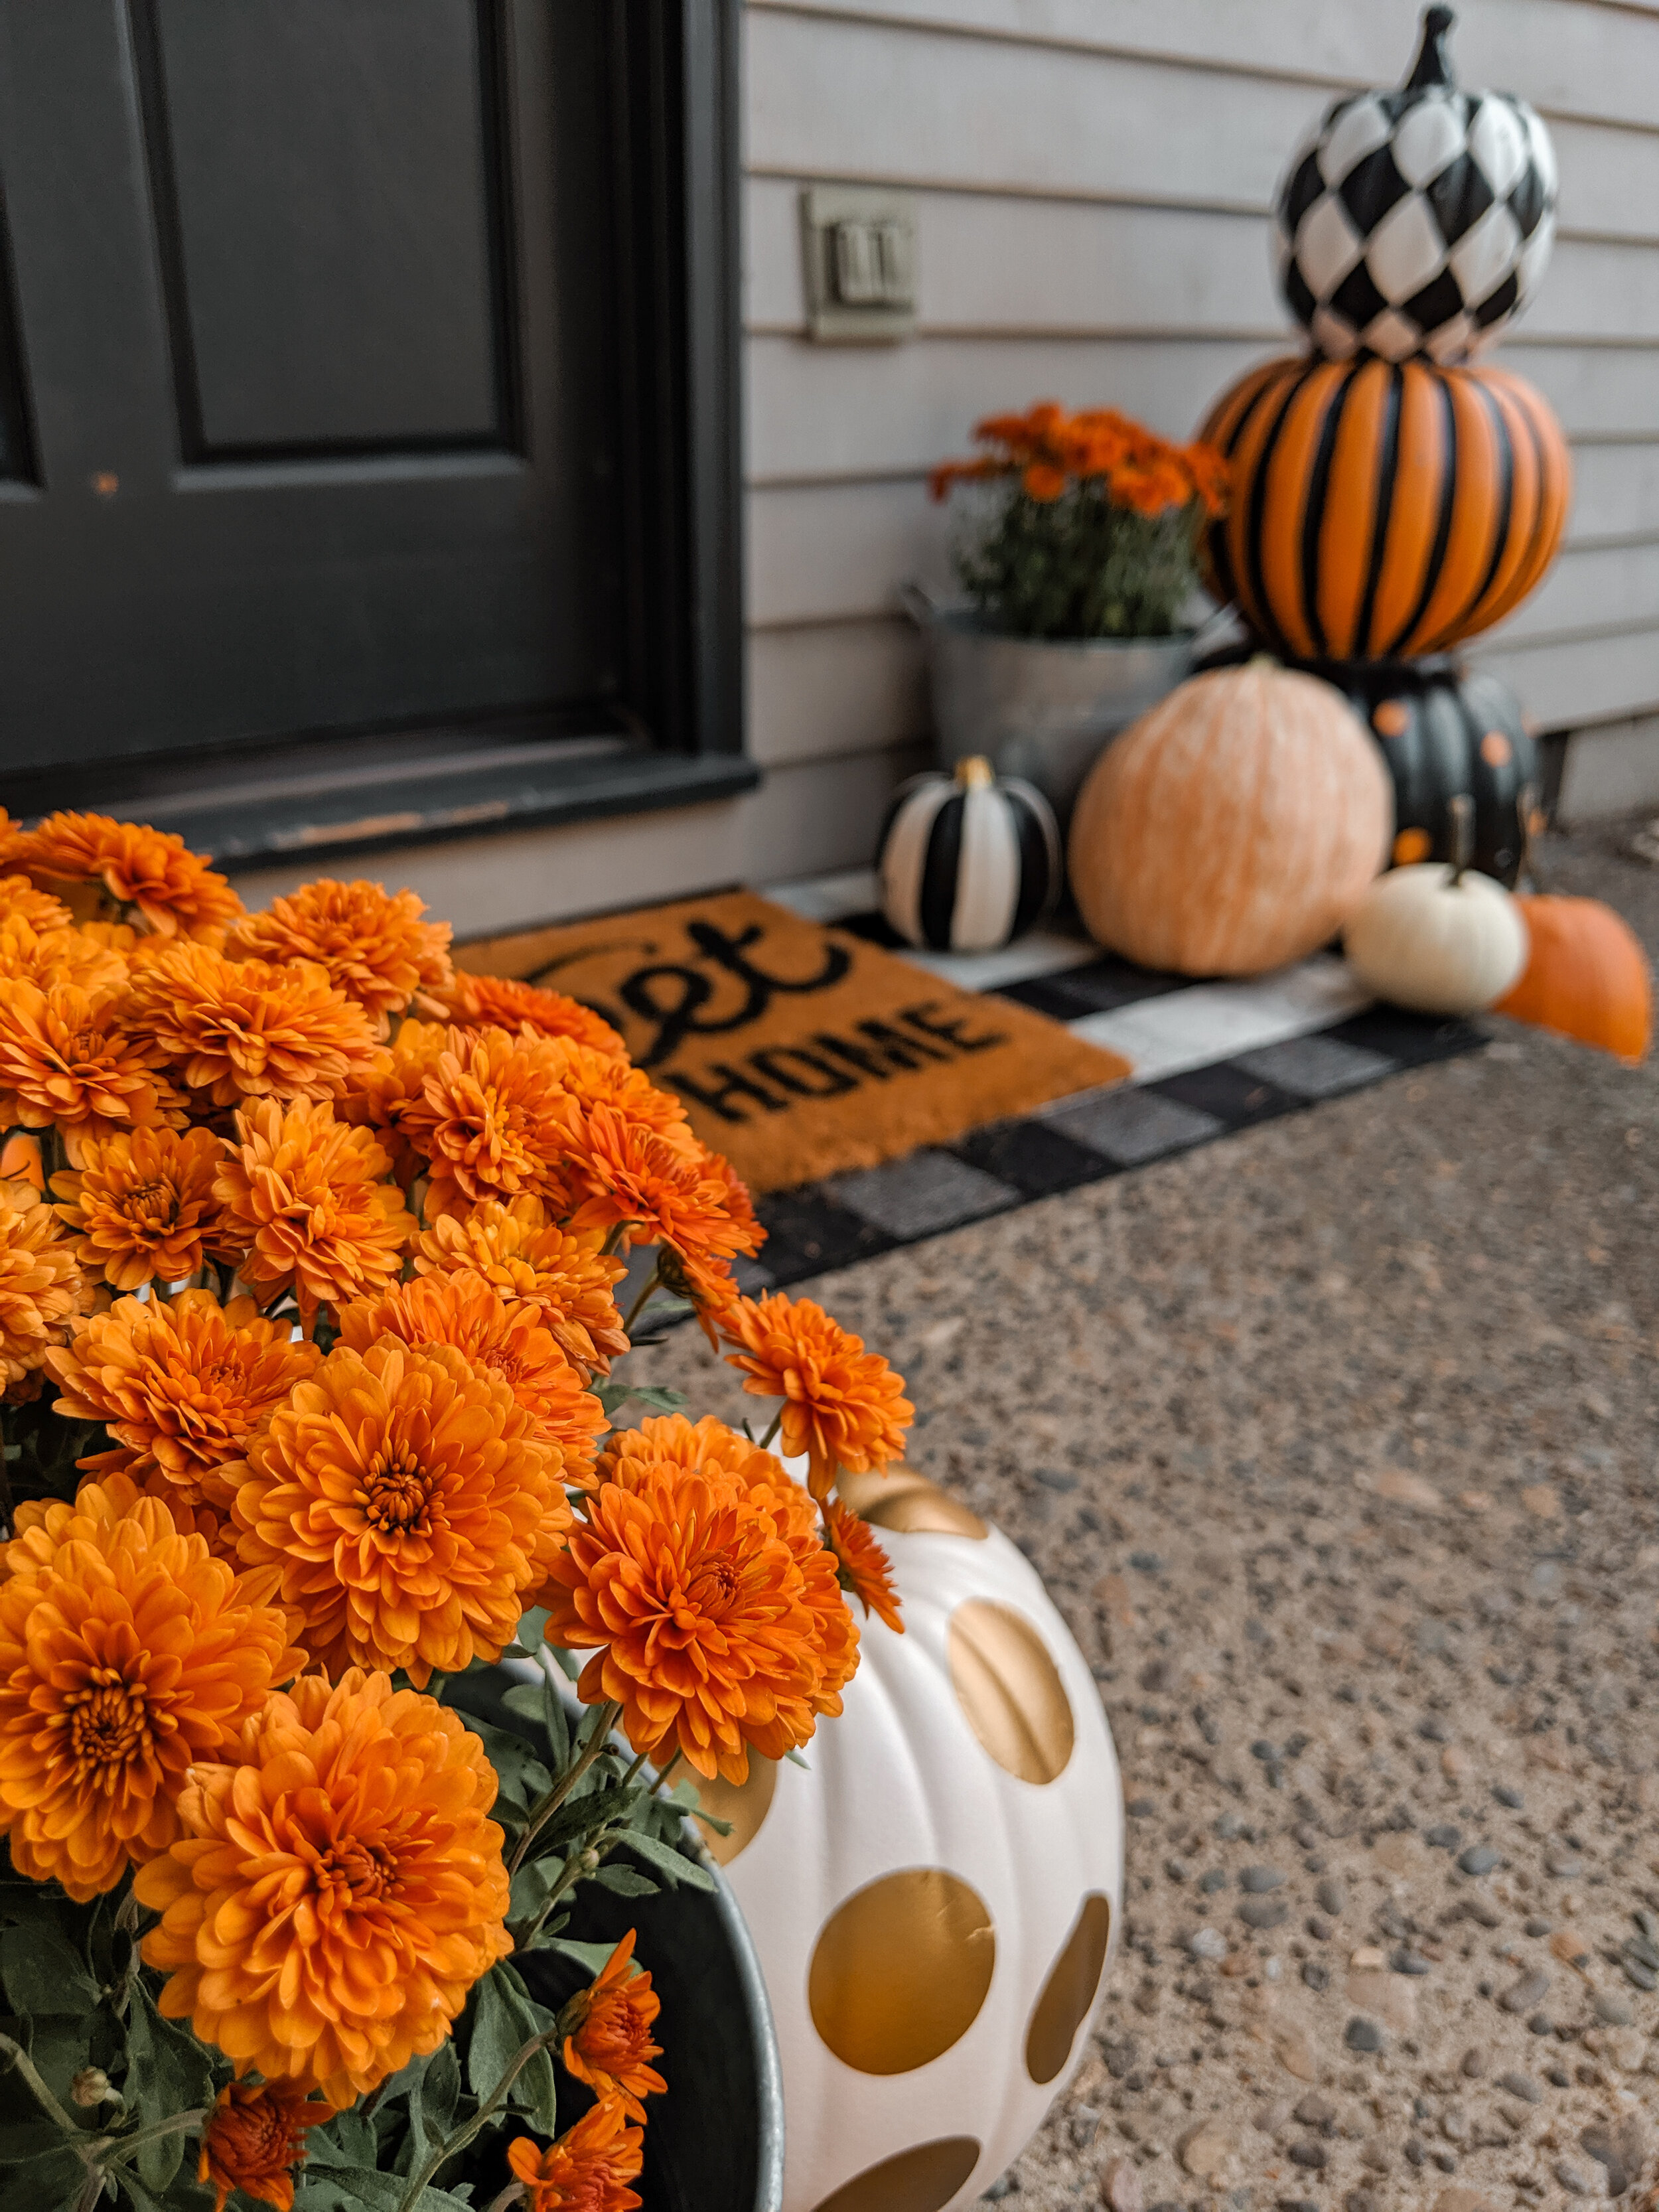 Front Door Decor For Fall - Mums and Pumpkins